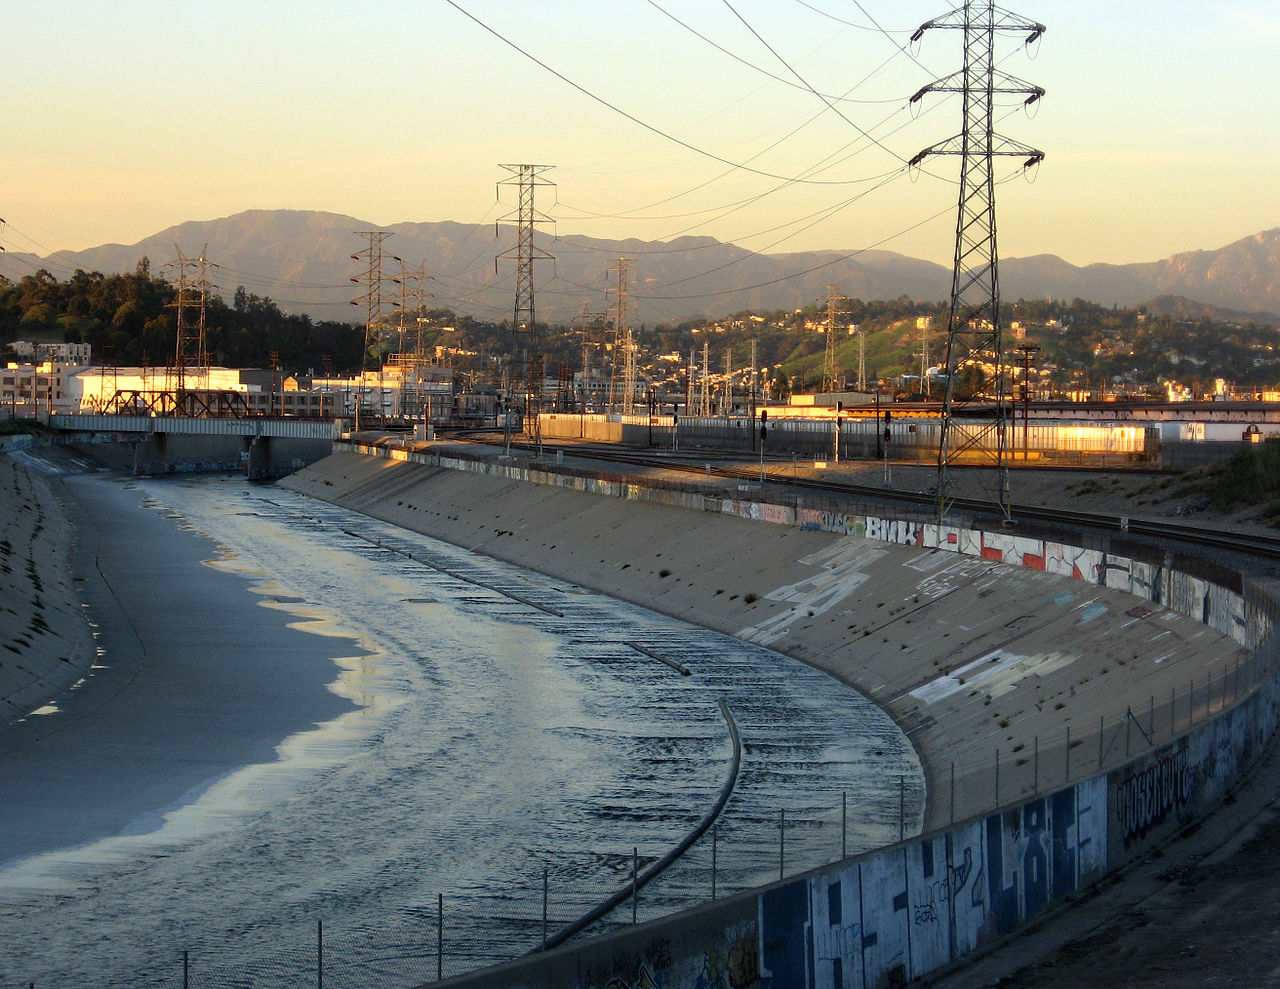 The Los Angeles River is extensively channelized with concrete embankments.